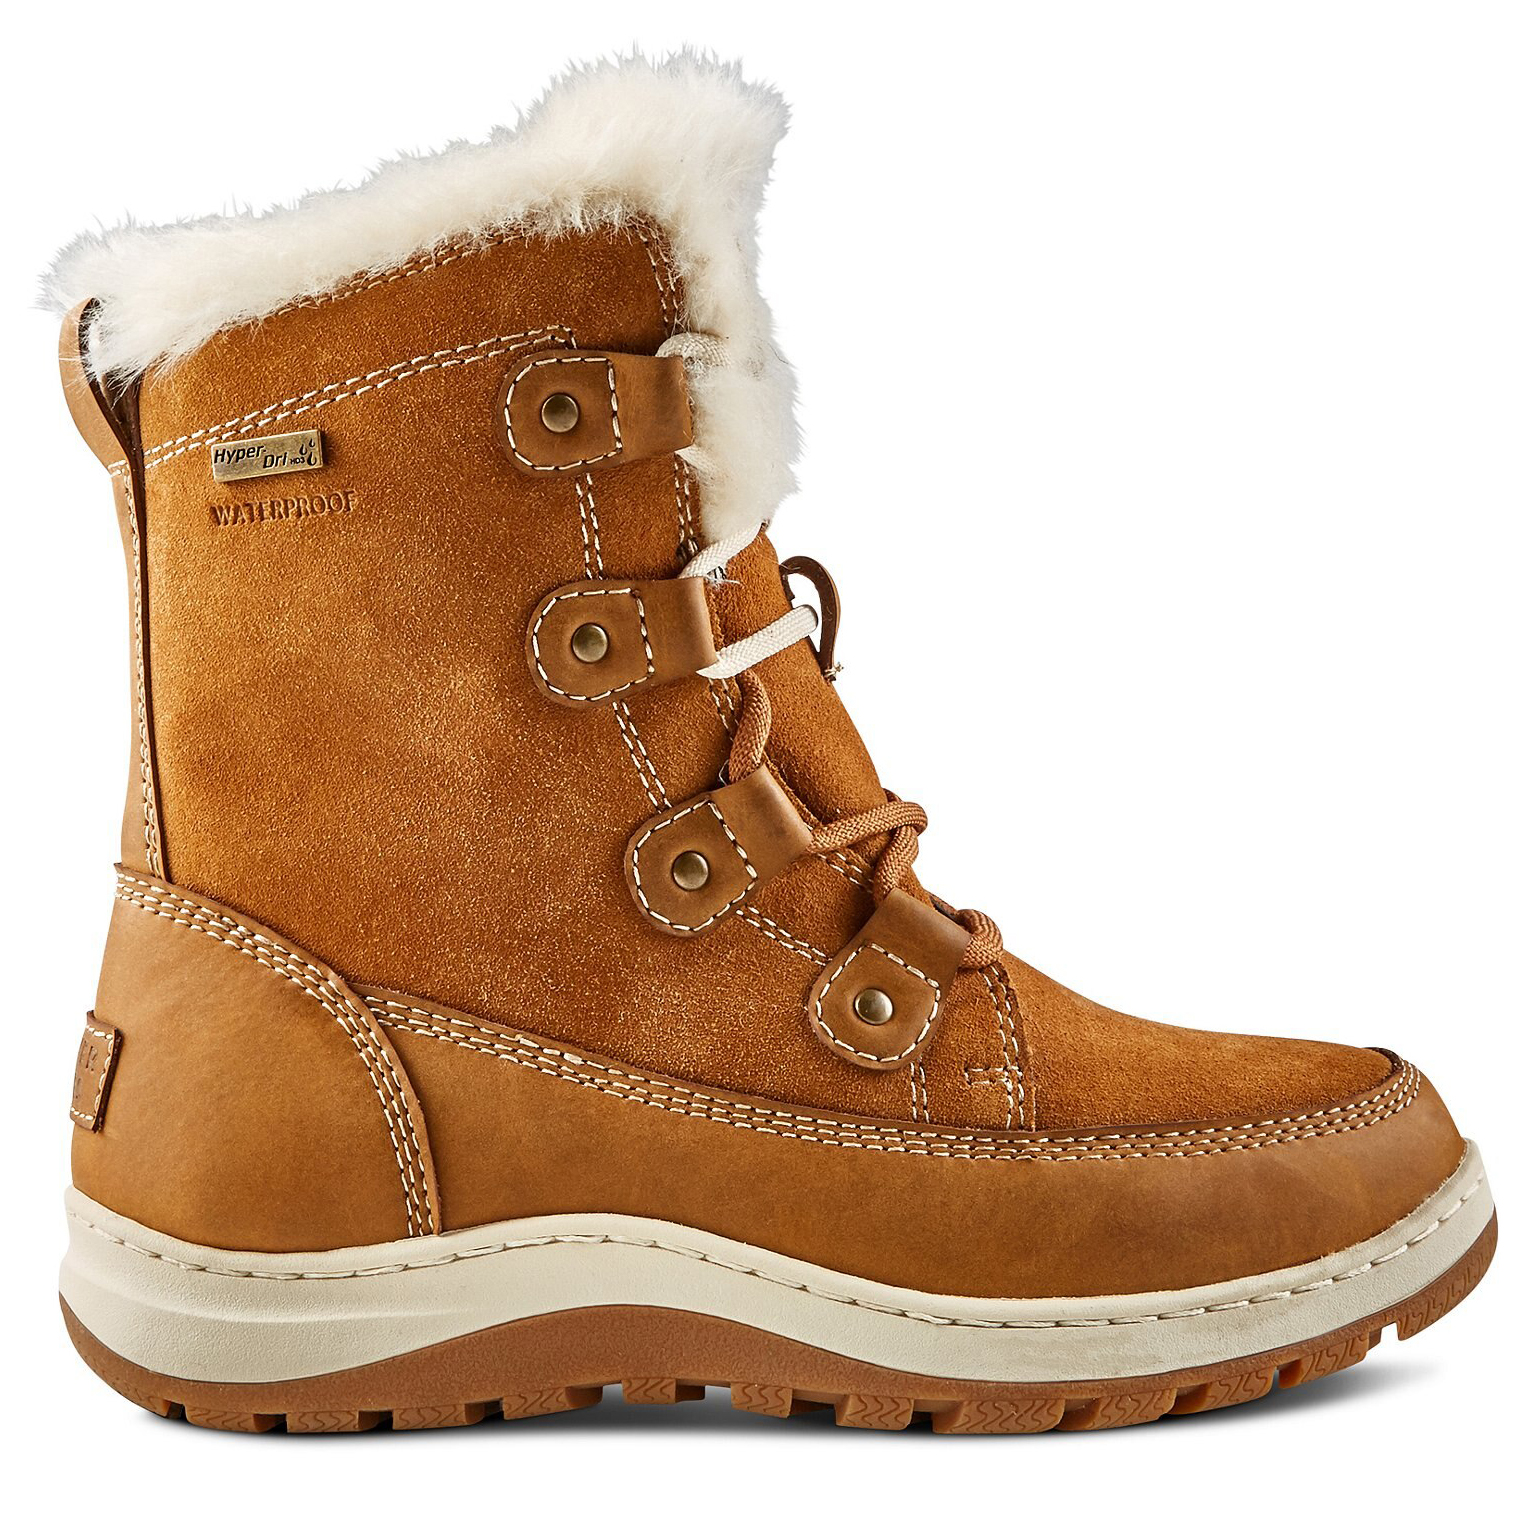 Best snow and ice boots for women - Denver Hayes Women's ICEFX HD3 Waterproof Winter Boots